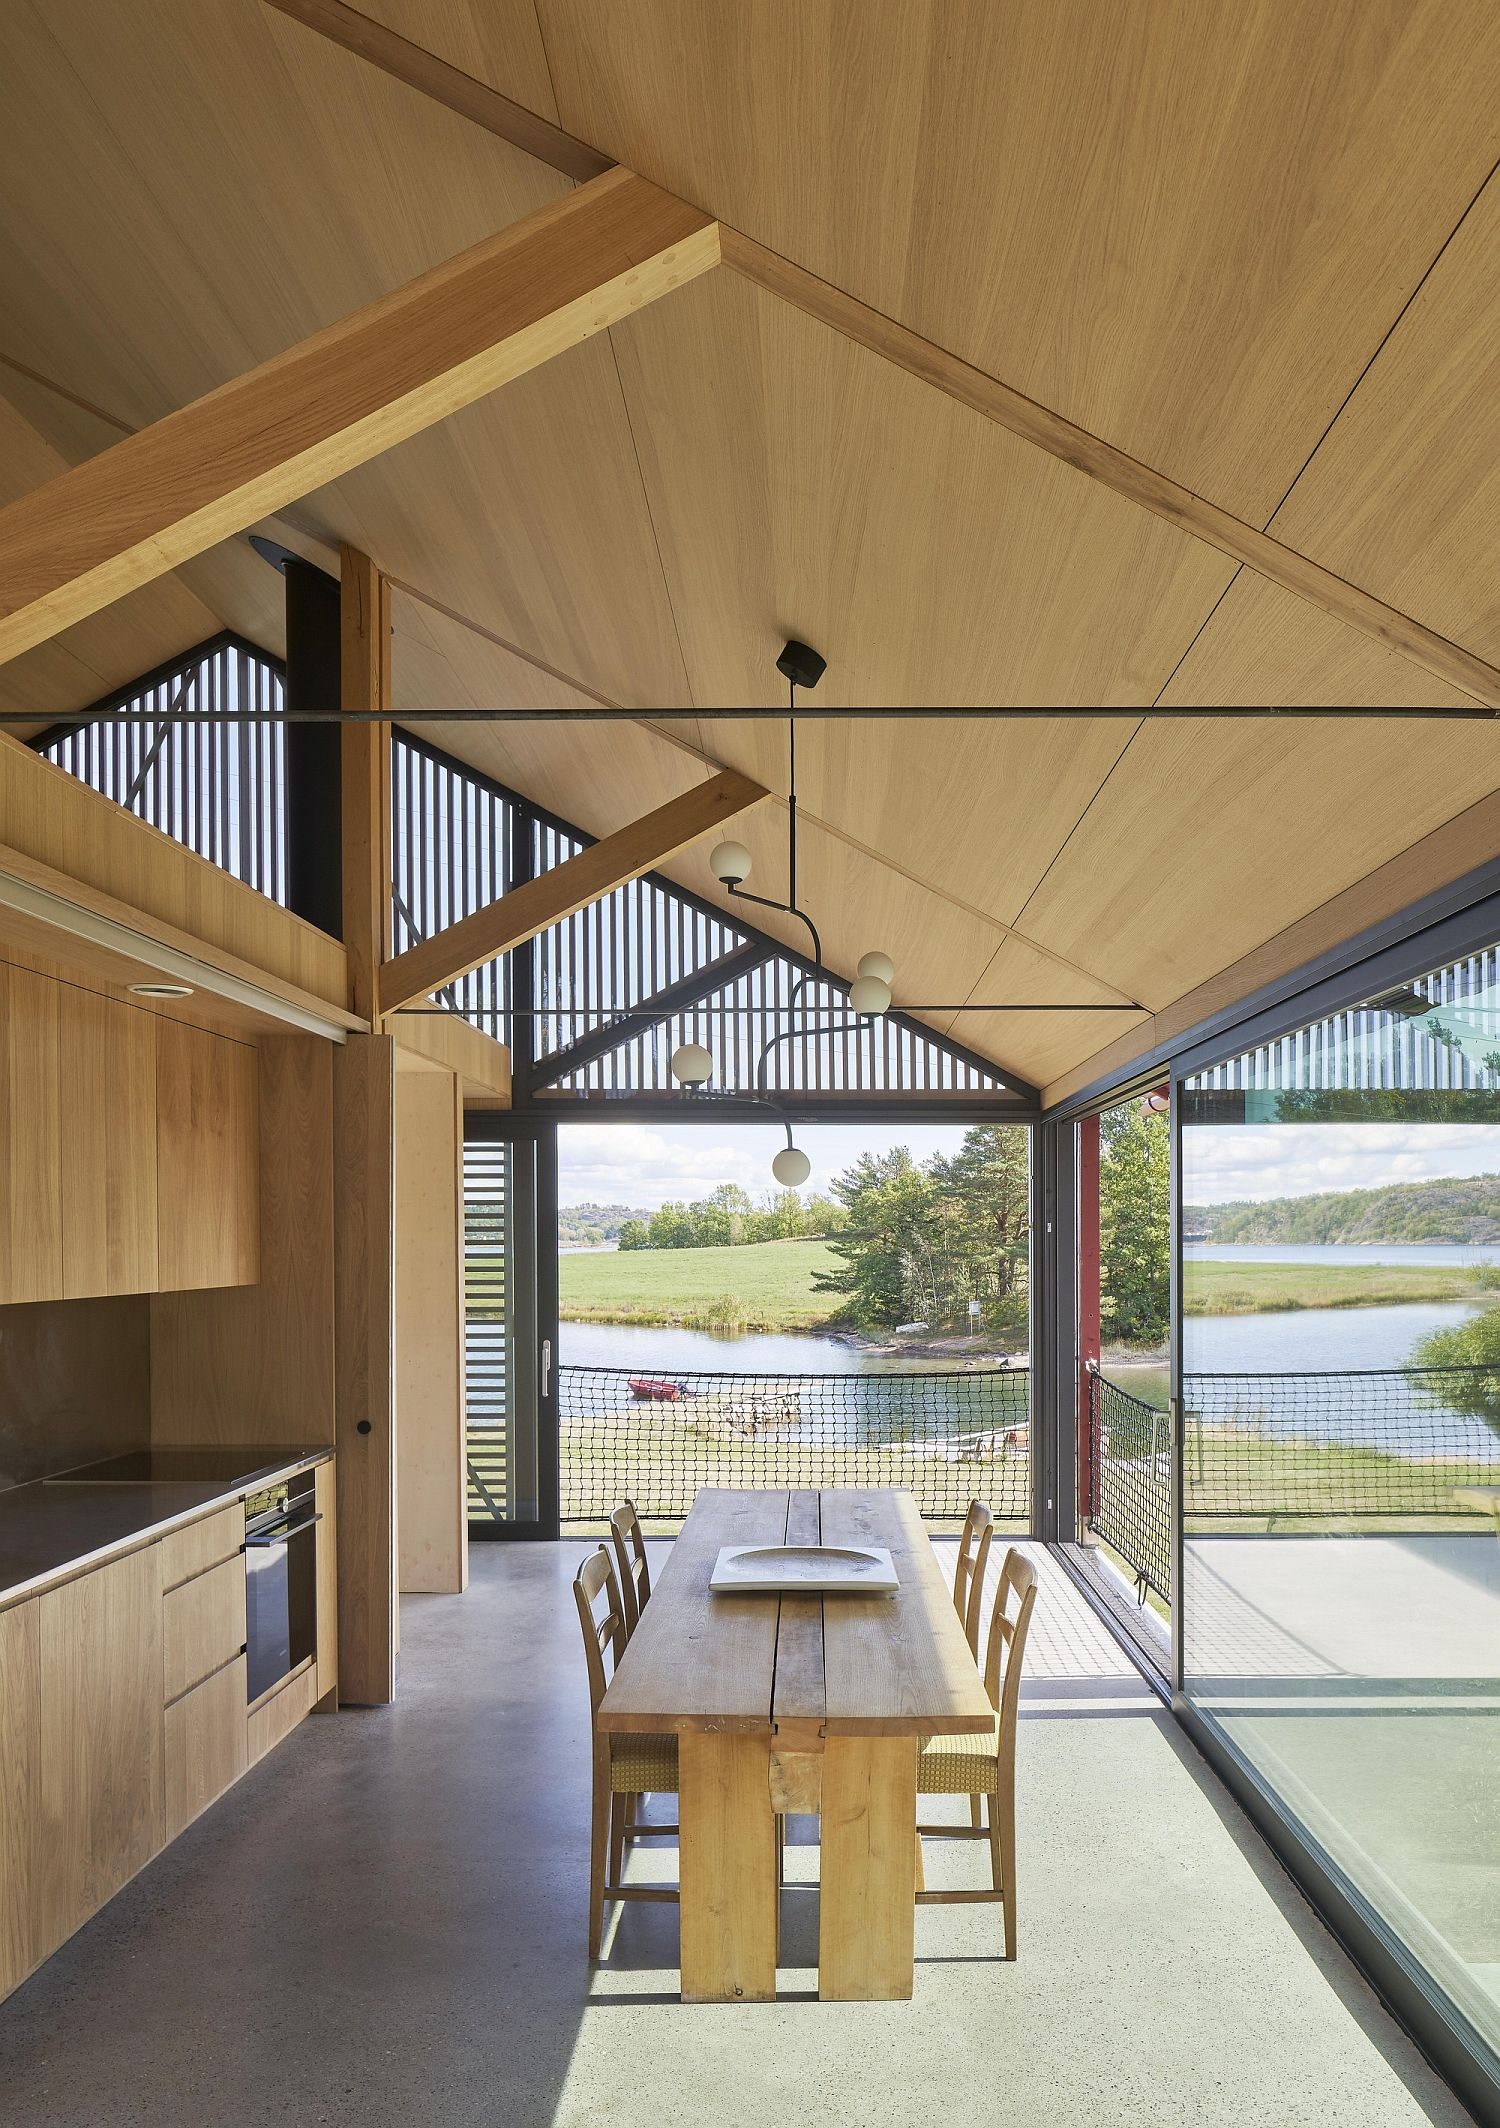 Woodsy kitchen and dining that overlooks the scenery outside